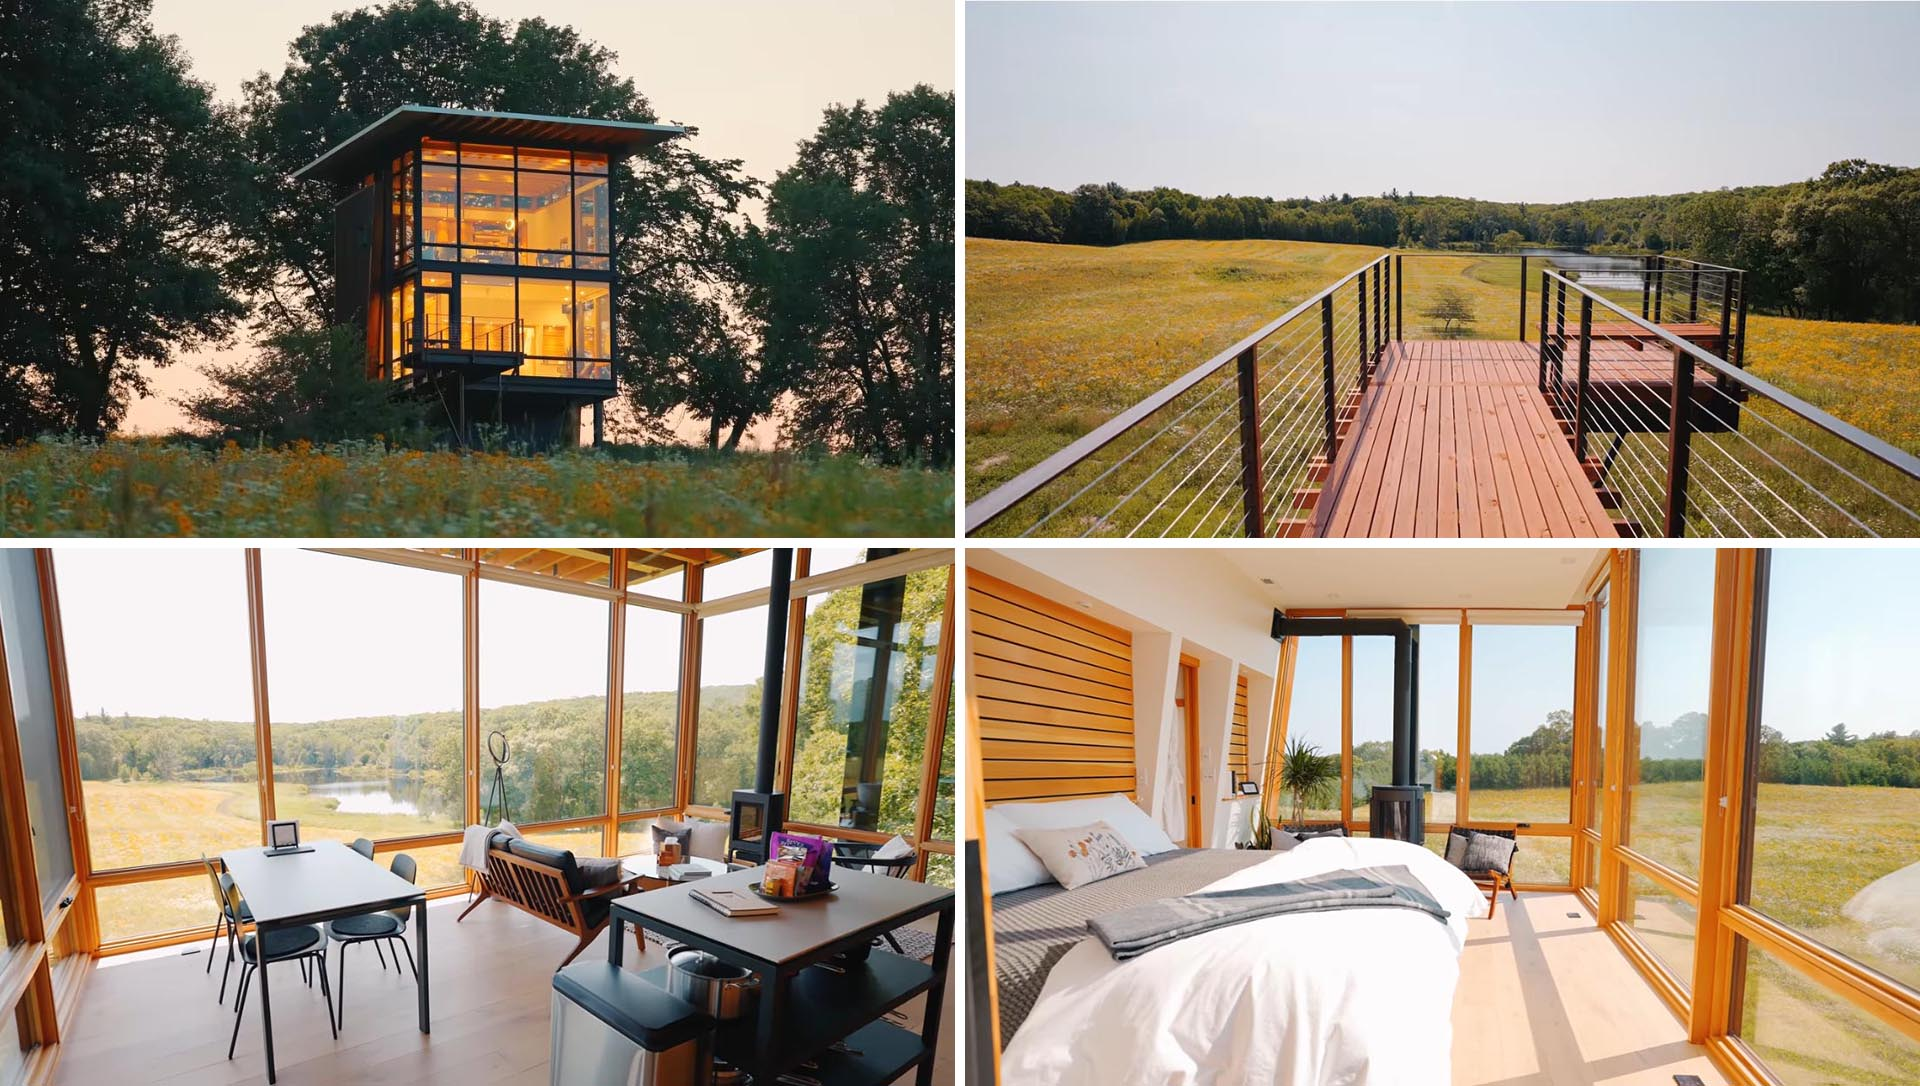 A modern two-storey cabin with a bedroom, bathroom, and open living room, dining area, and kitchen.